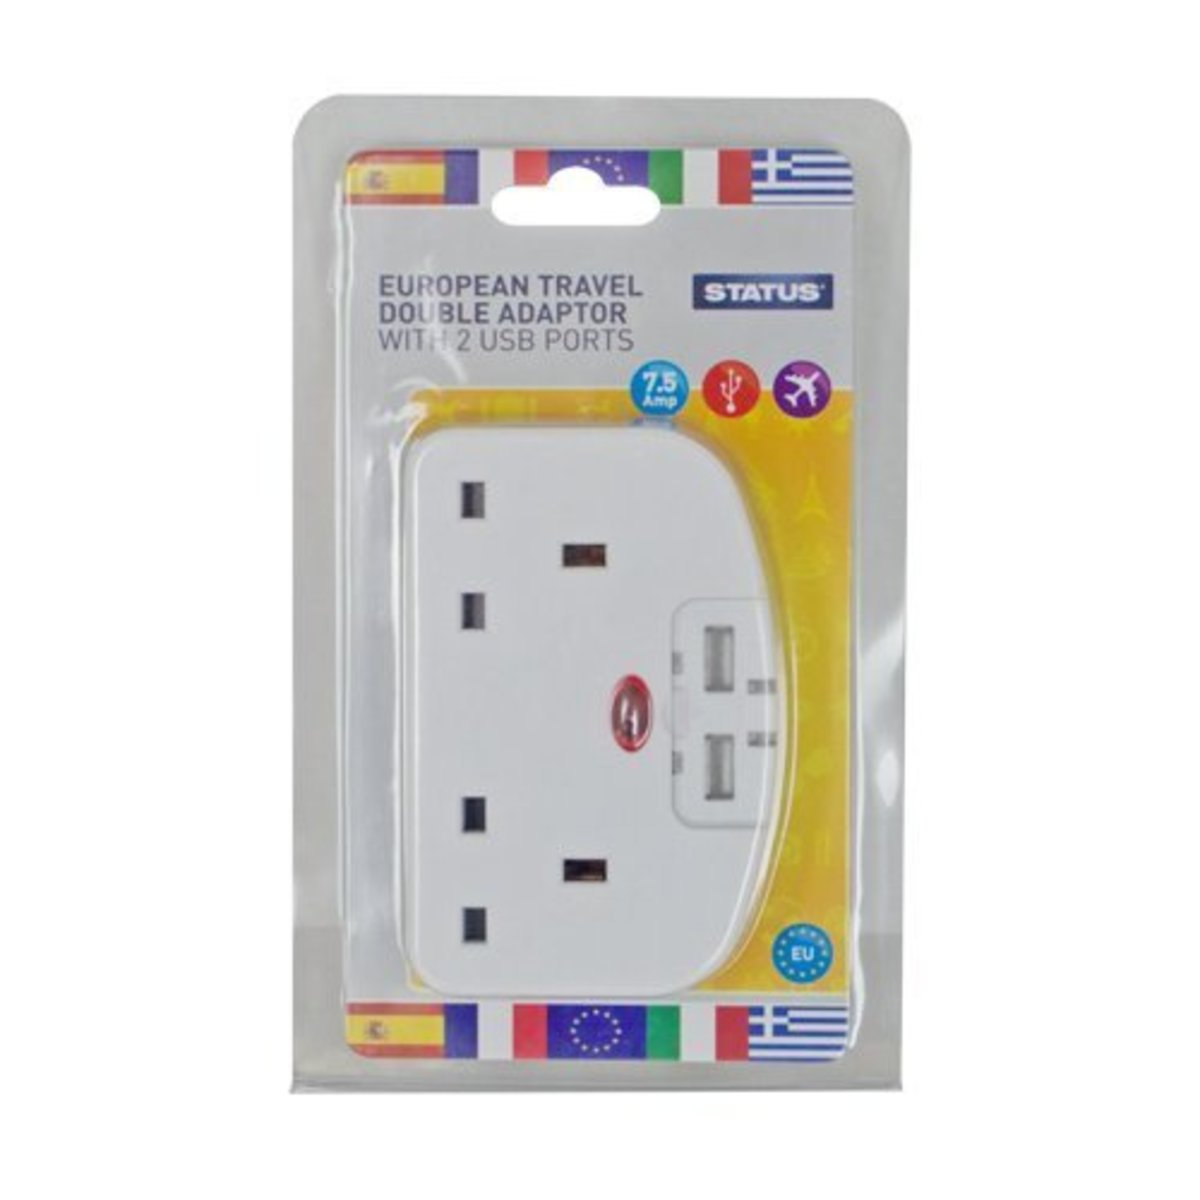 2 Way European Travel Adaptor with 2 USB Ports 2.1A Total